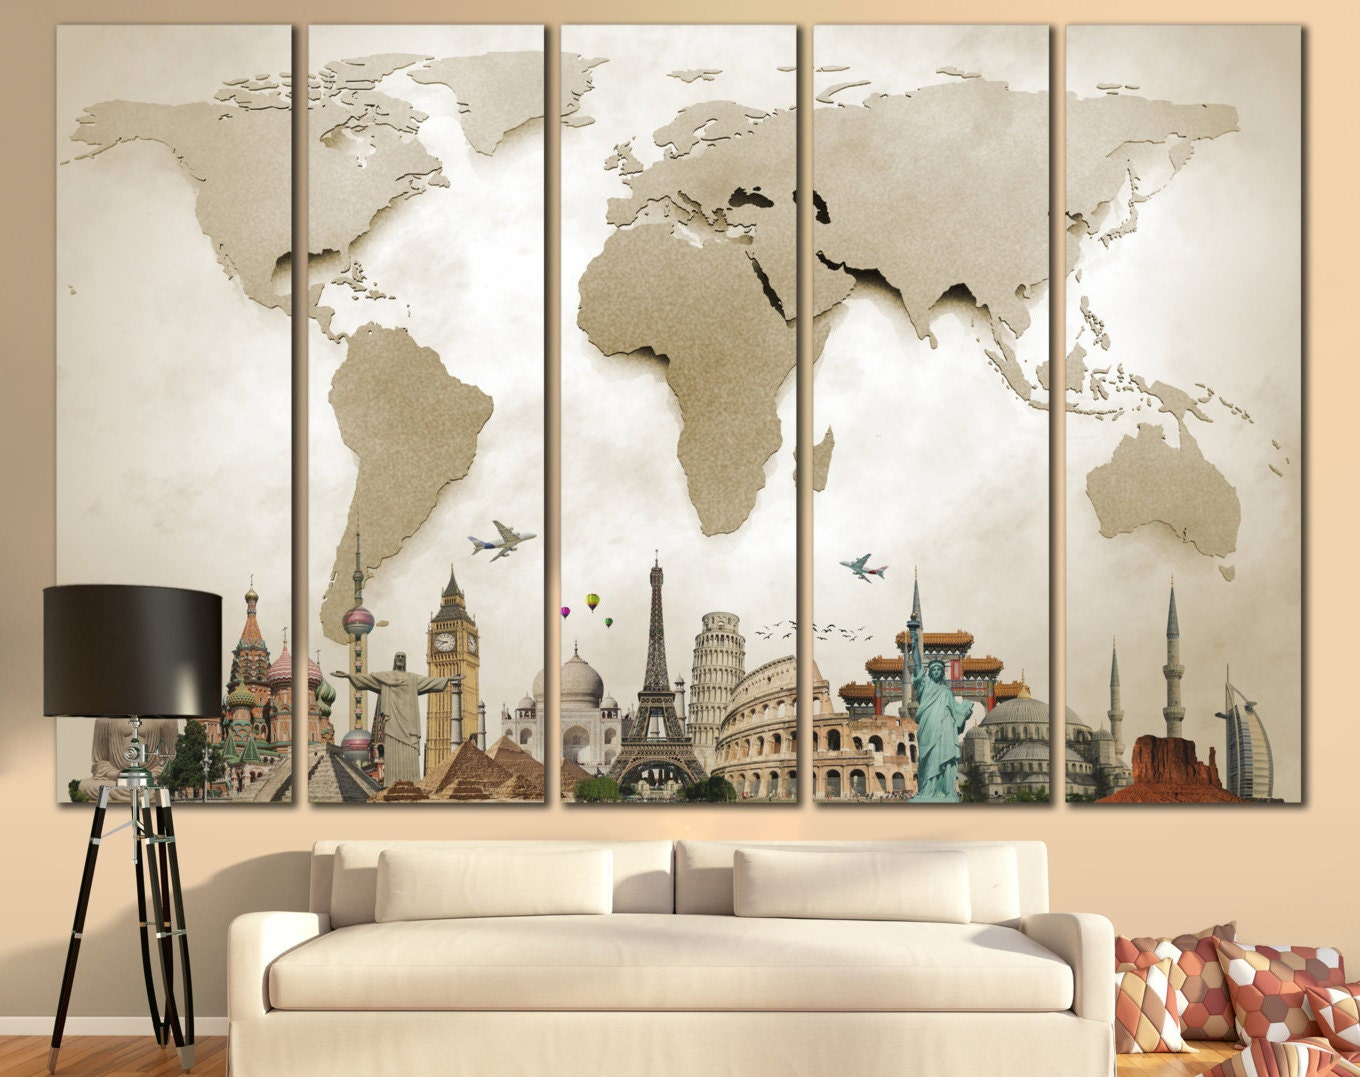 World Map Large Print Beige World Map Big World Map Canvas Print Custom  Quote Map Travel World Map Wall Art Map With Landmarks